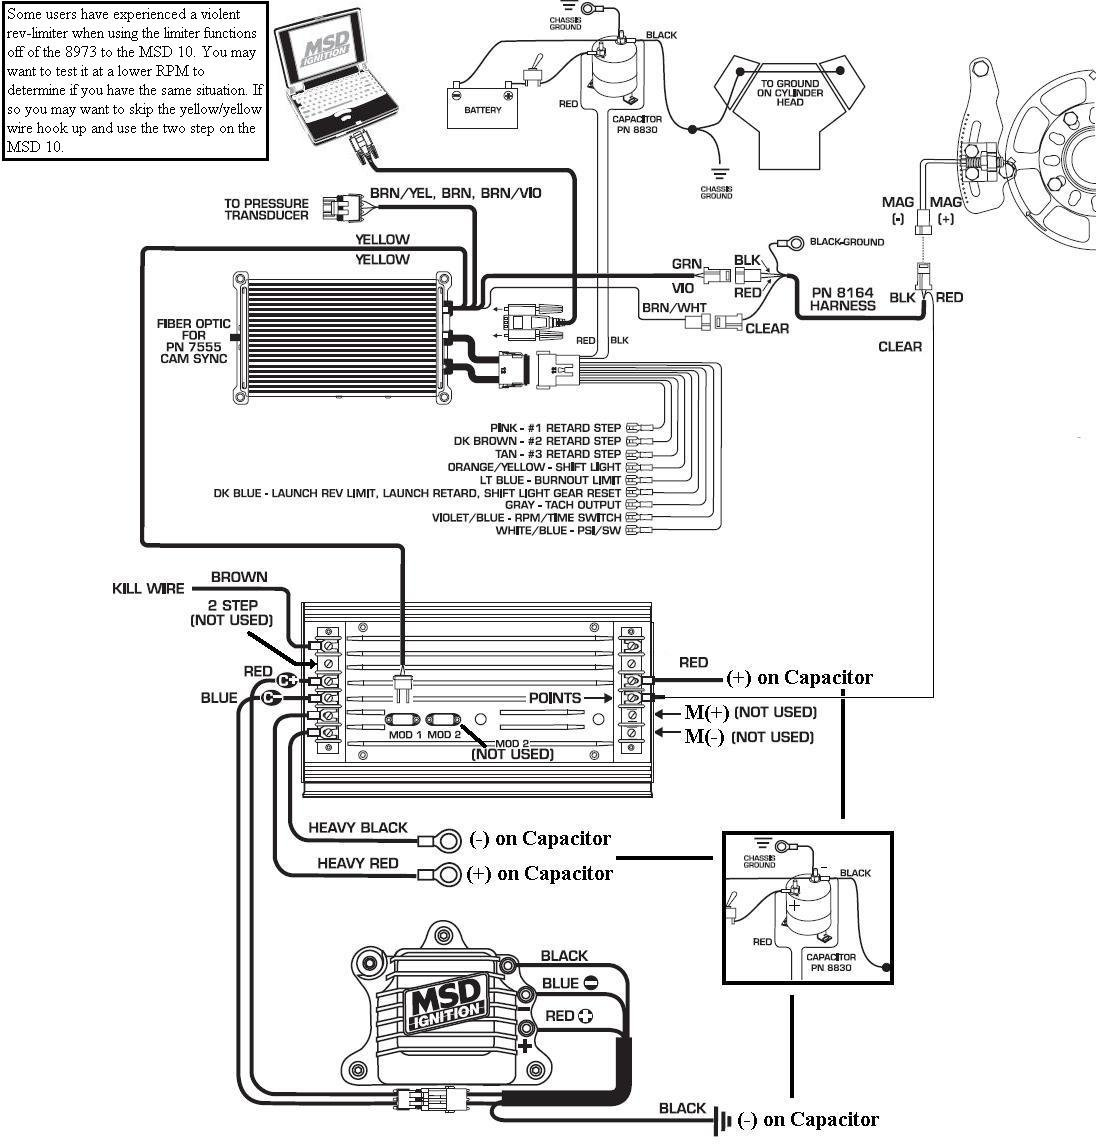 Msd Ignition Diagram Worksheet And Wiring 6al Diagrams For 8950 Electrical Schematic